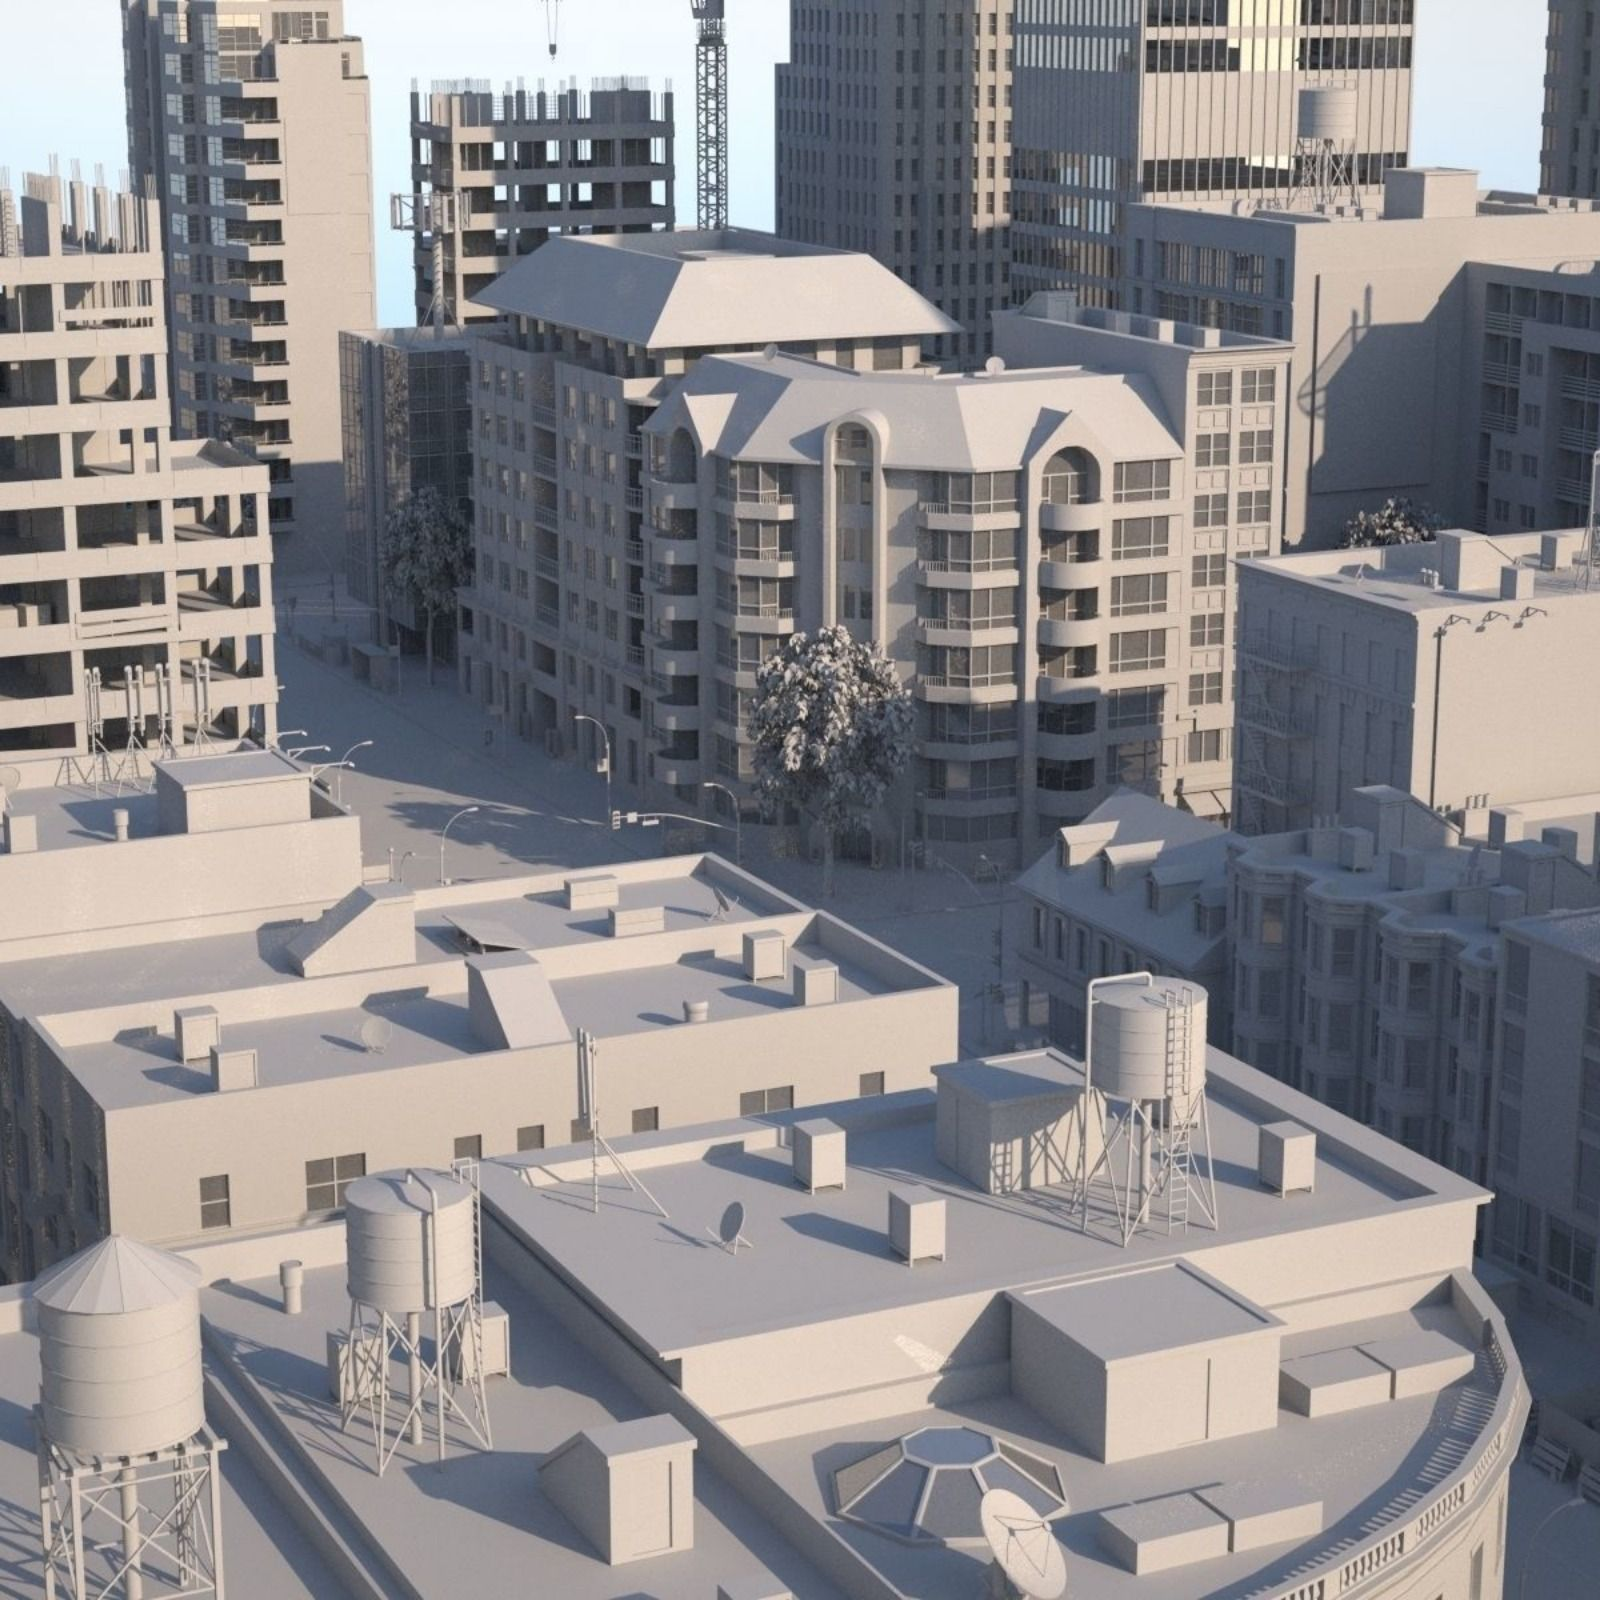 Highly Detailed Low-poly 3d Modular City Containing